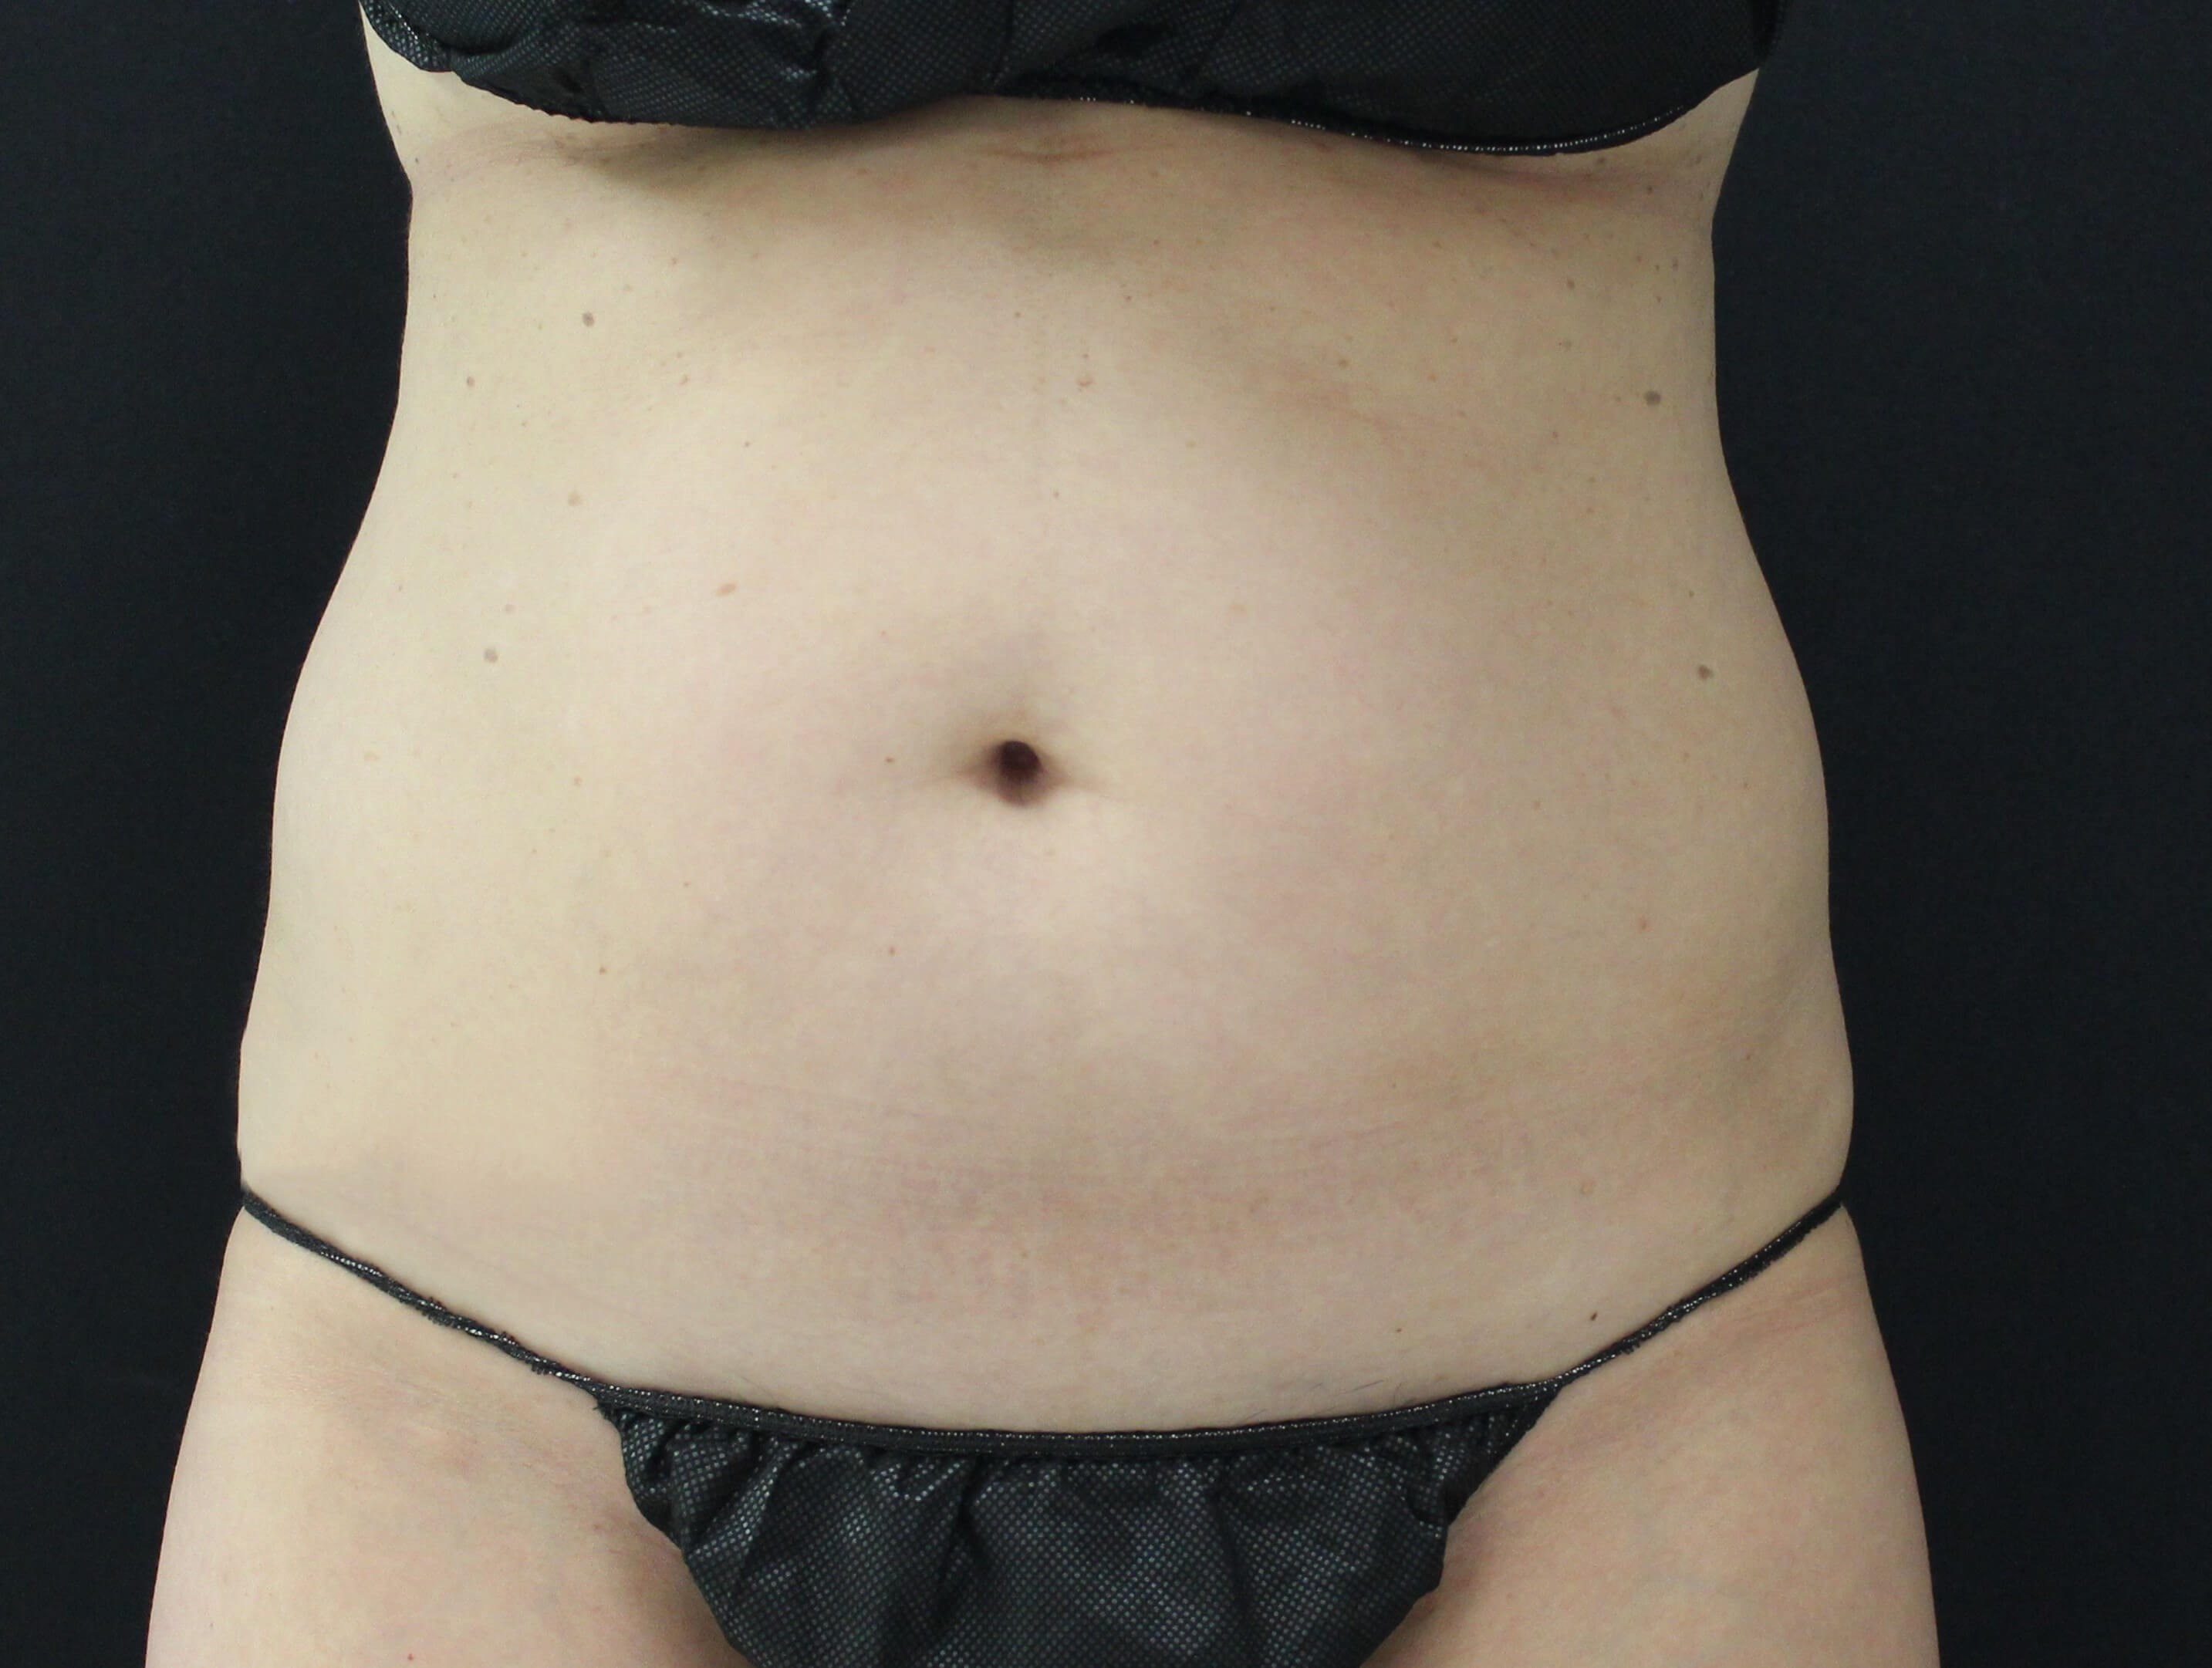 Coolsculpting abdomen, flanks Before